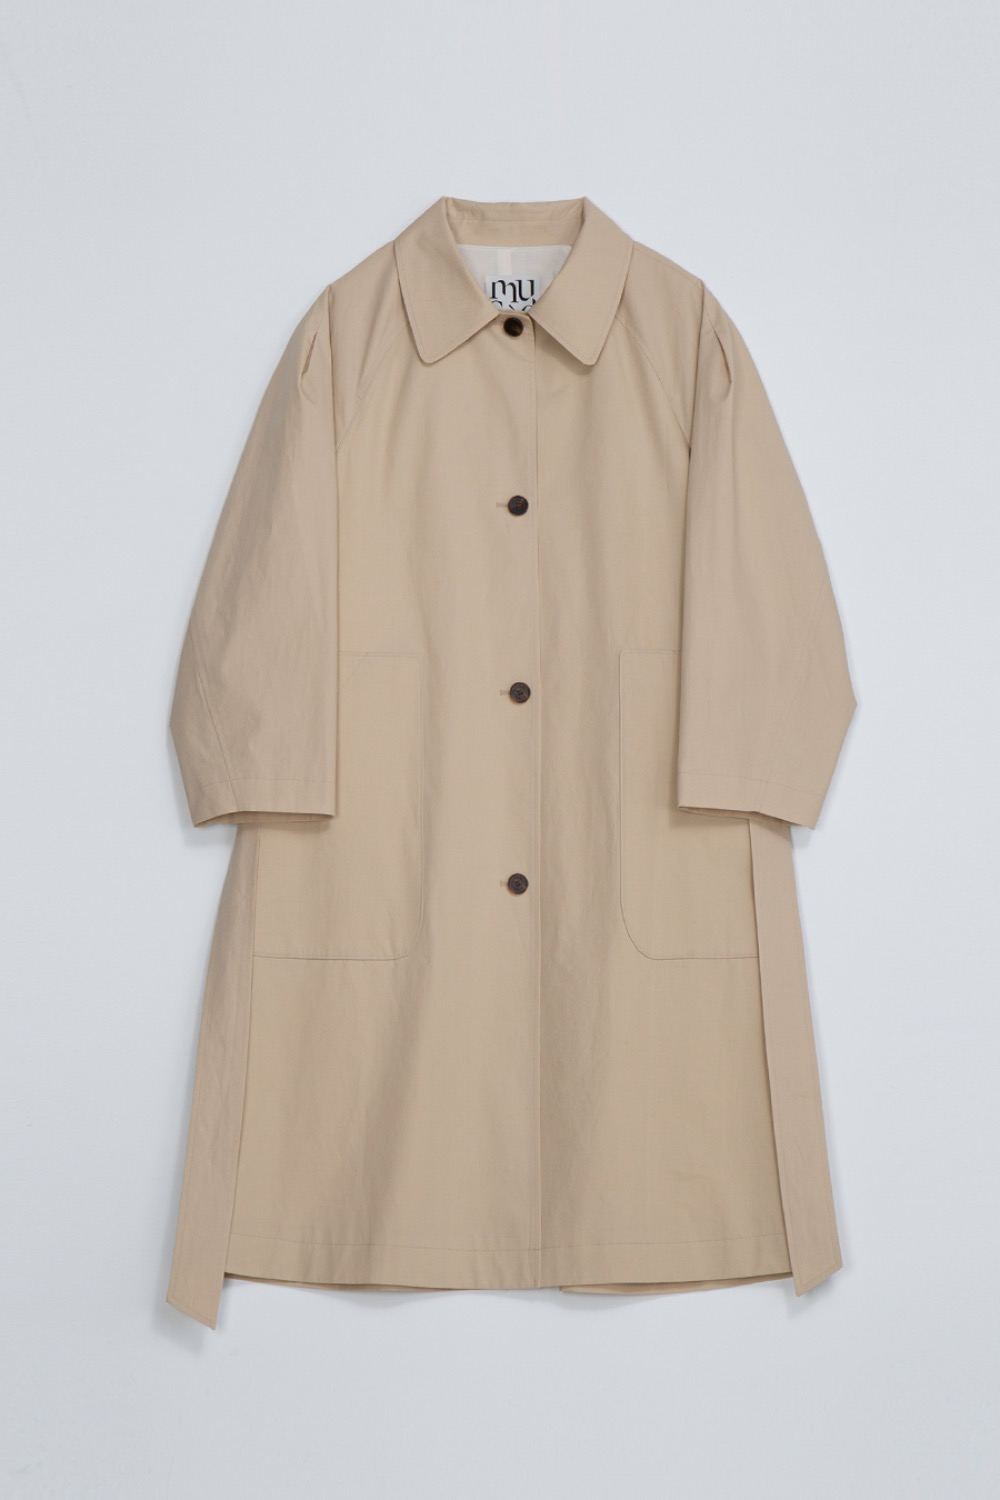 BON TRENCH COAT - BEIGE COTTON TWILL